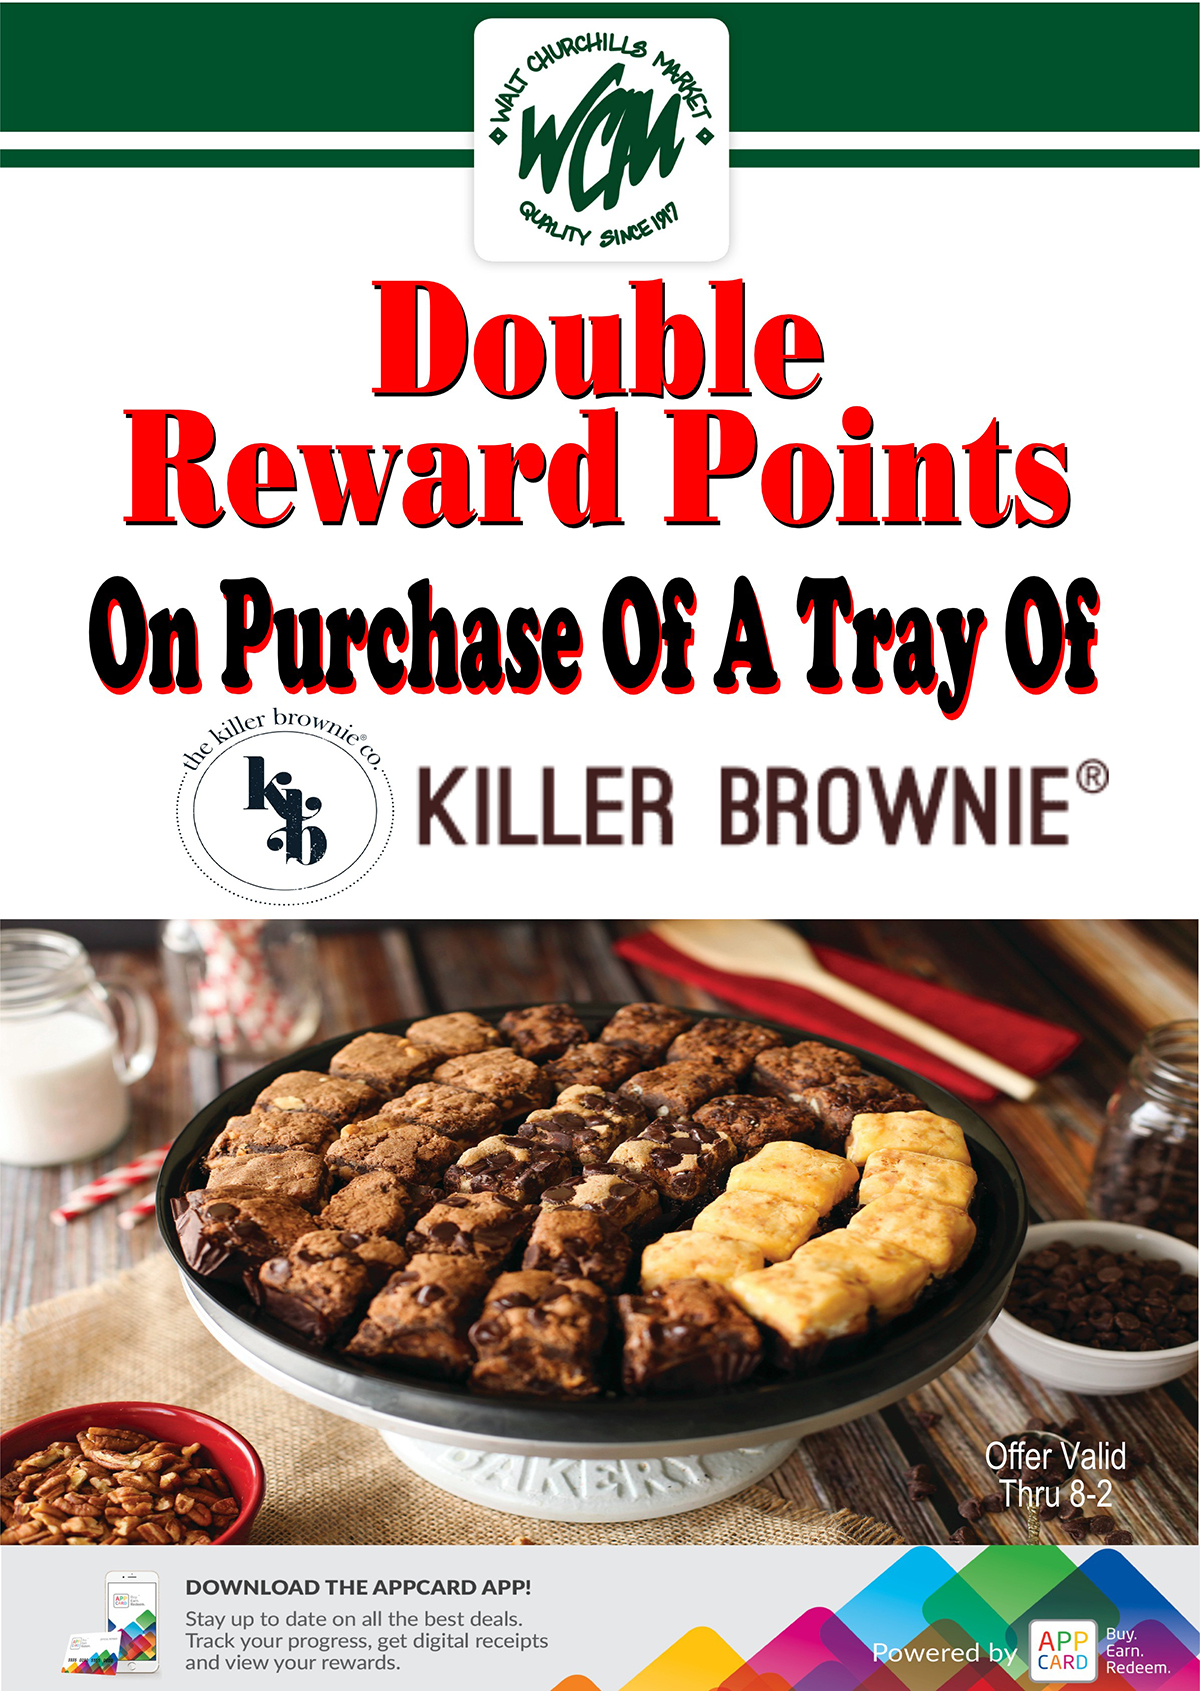 Double Reward Points on purchase of a tray of Killer Brownies, valid thru 8-2